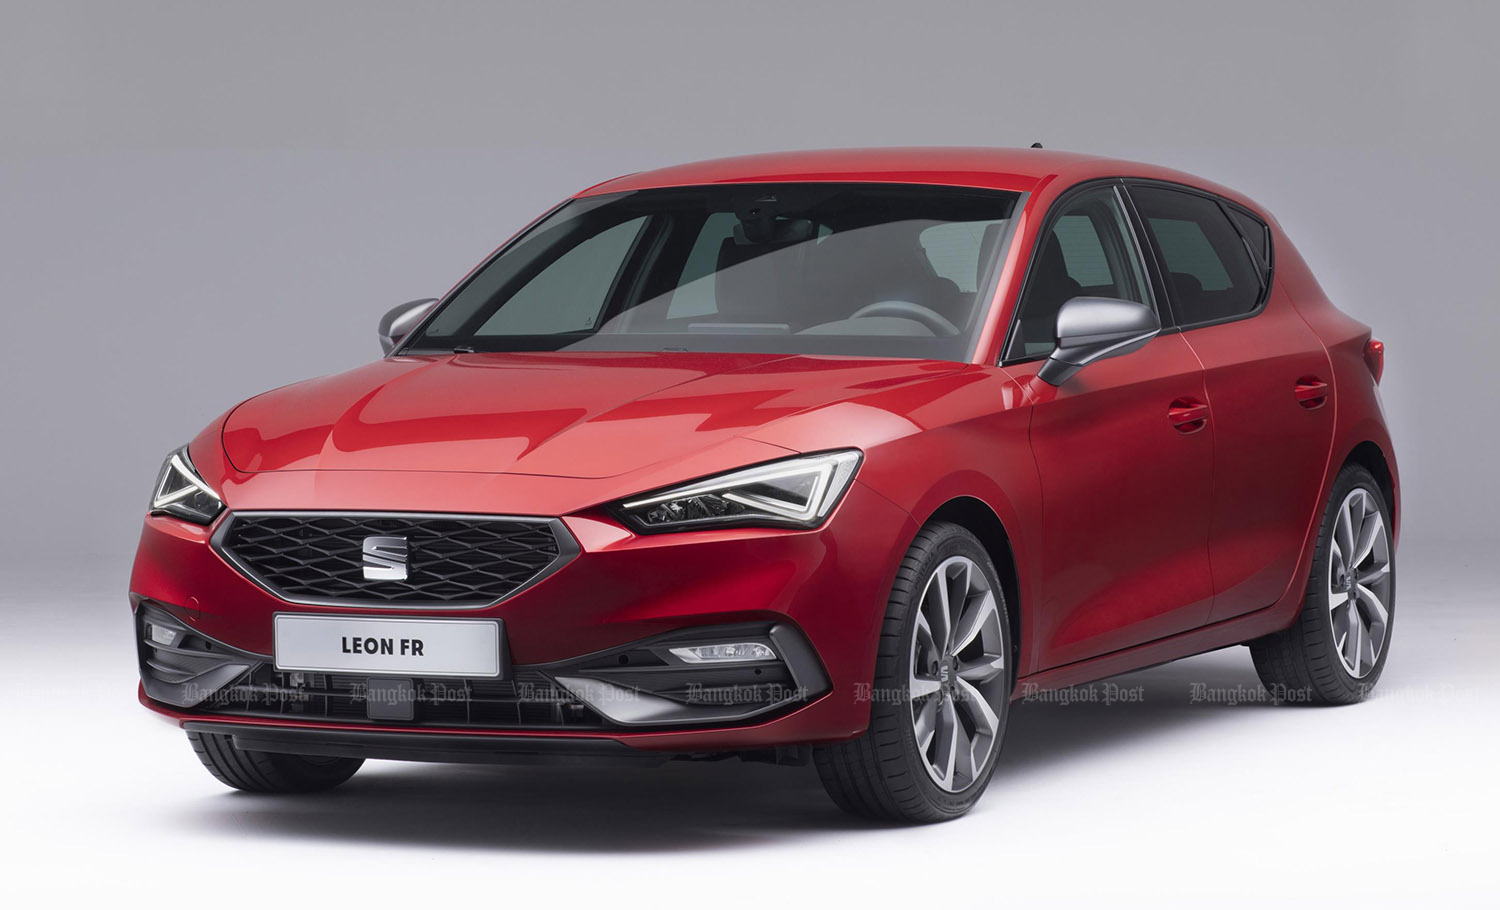 New Seat Leon modernised with latest Volkswagen tech